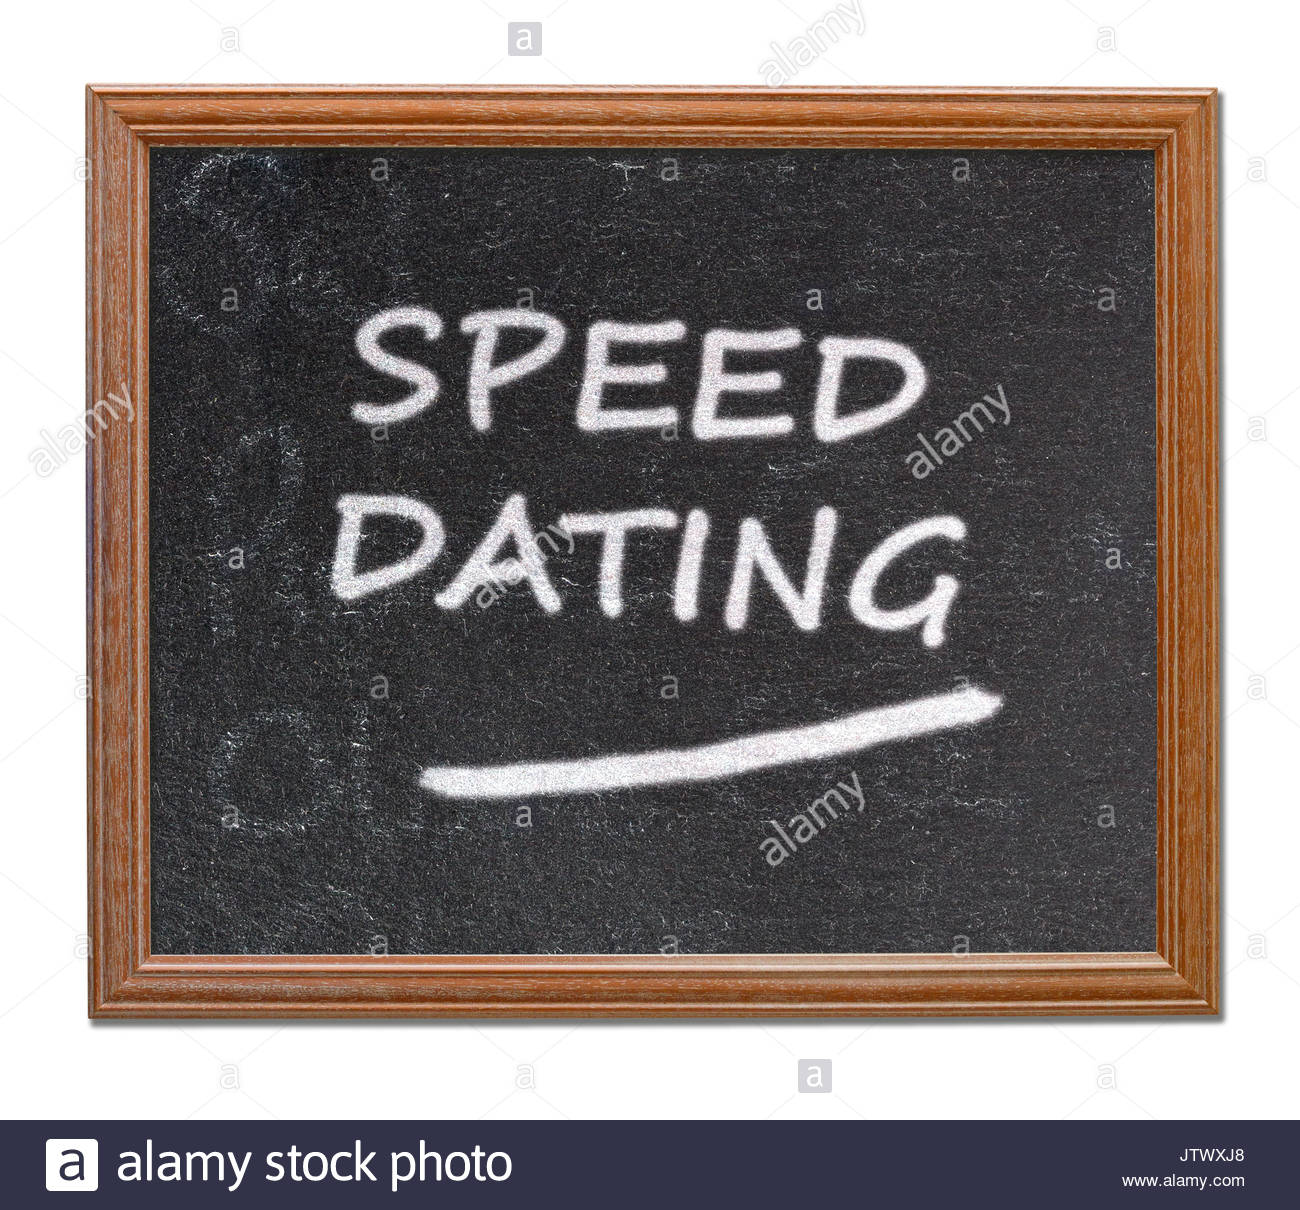 Speed Dating Dorset Royaume-Uni